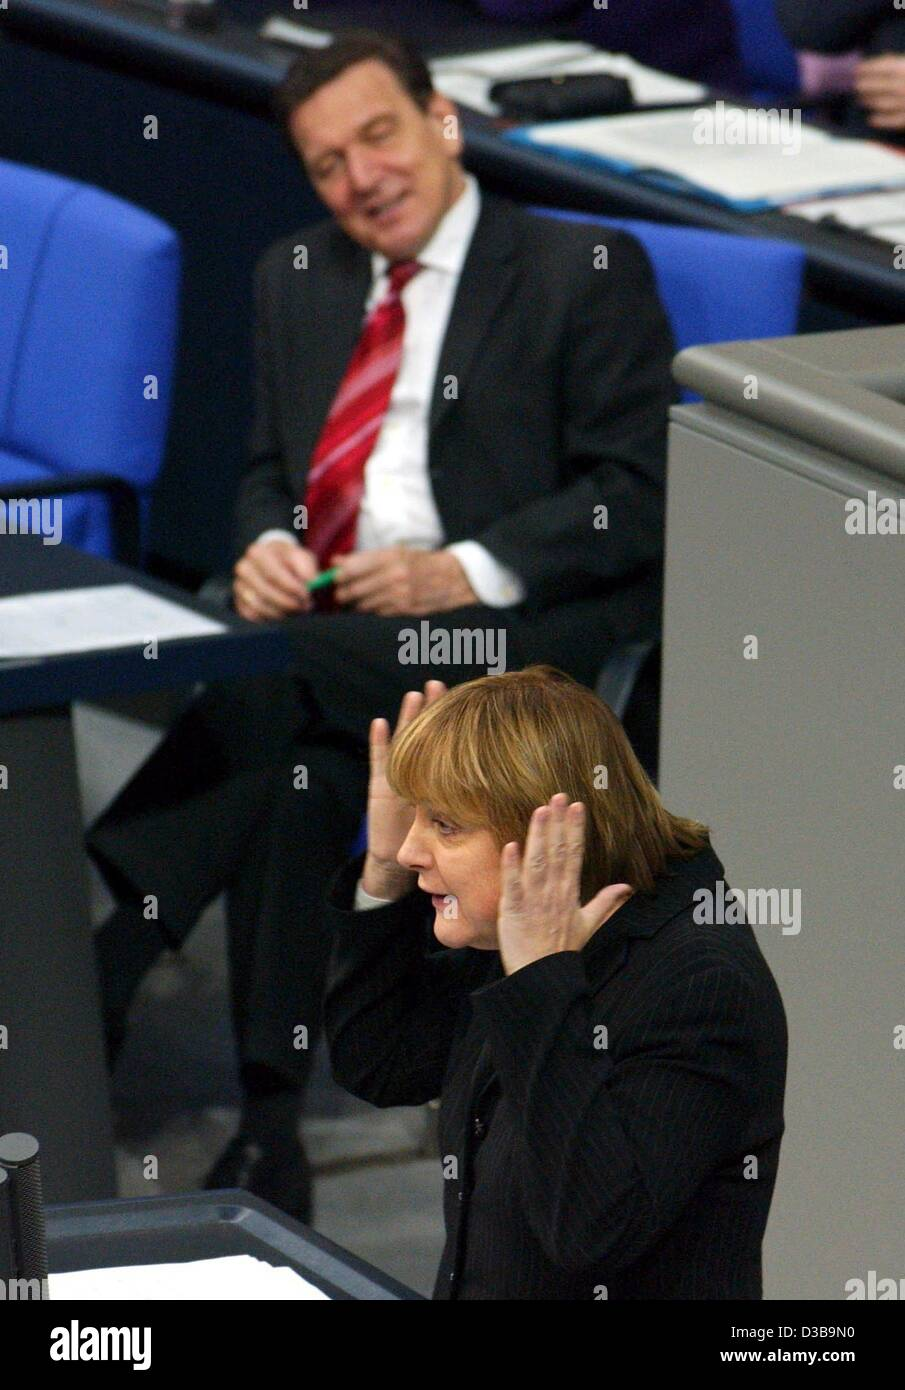 (dpa) - CDU chairwoman Angela Merkel gestures as she speaks in the Bundestag (lower house of German parliament), watched by Chancellor Schroeder, Berlin, 4 December 2002. Merkel said Schroeder was not fit for the neccessary tasks. Stock Photo